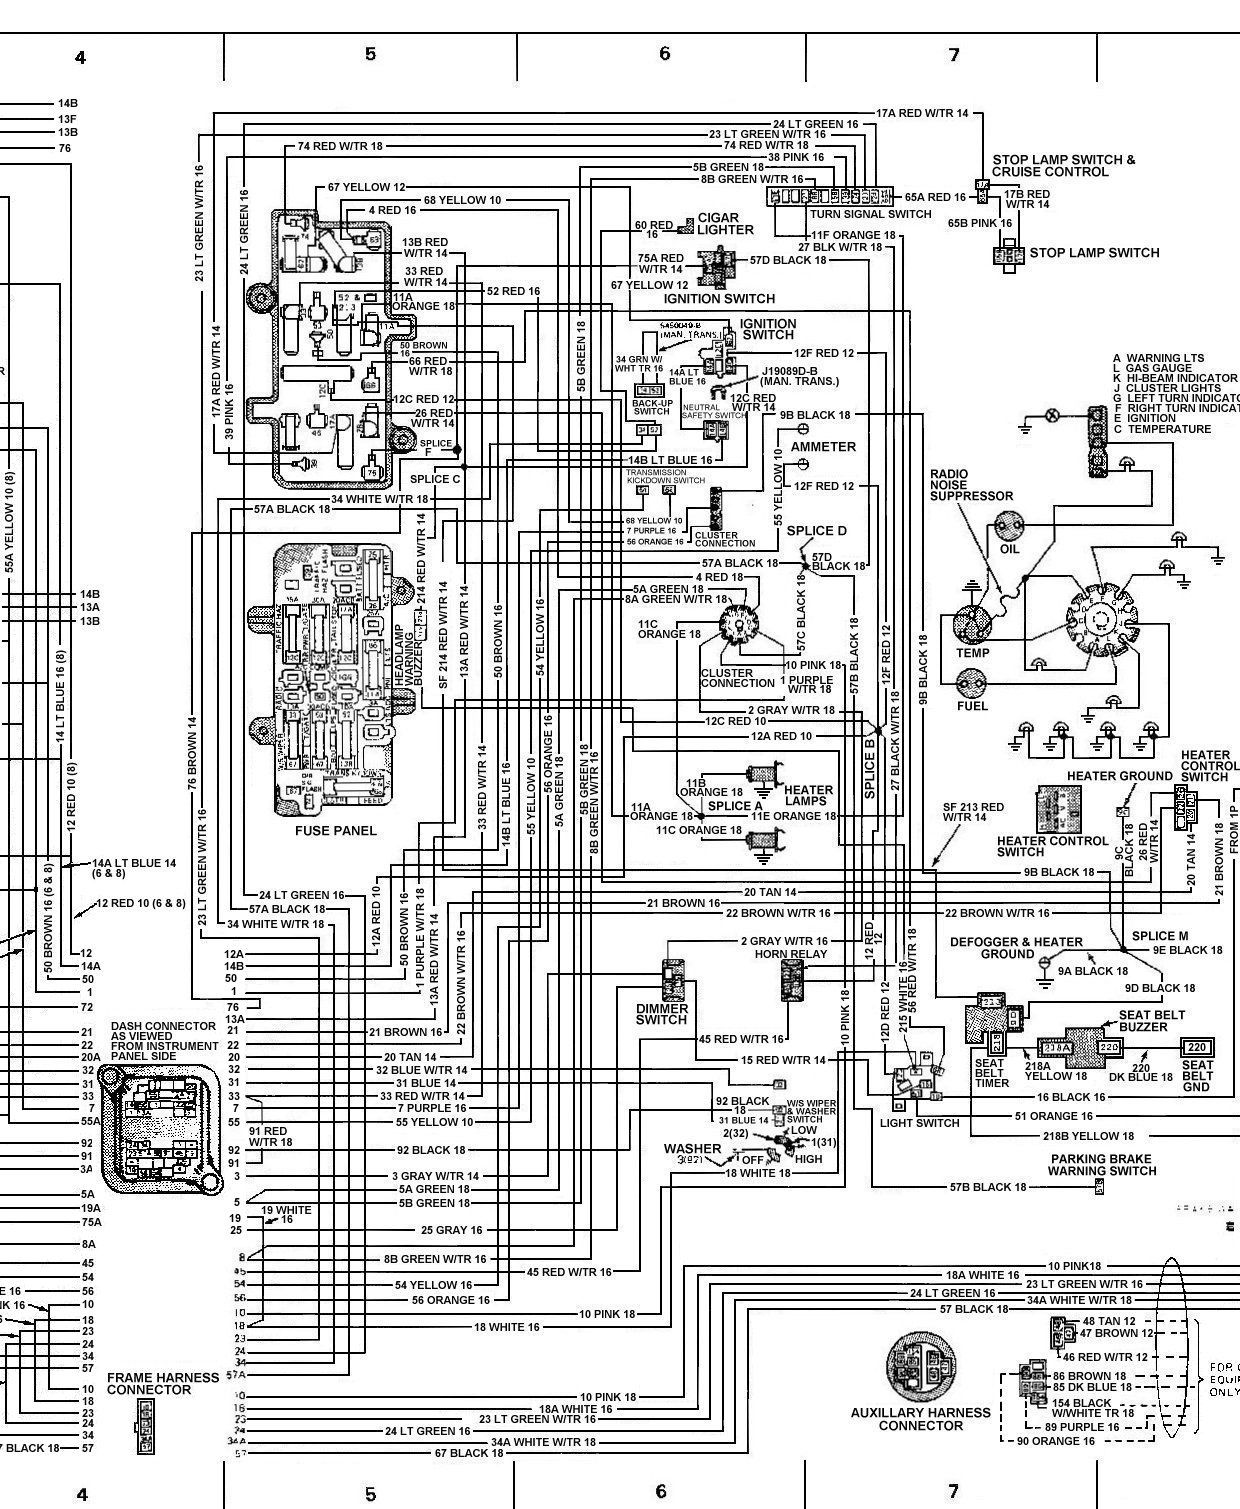 DIAGRAM] 40 Kia Sportage Wiring Diagrams FULL Version HD Quality ...